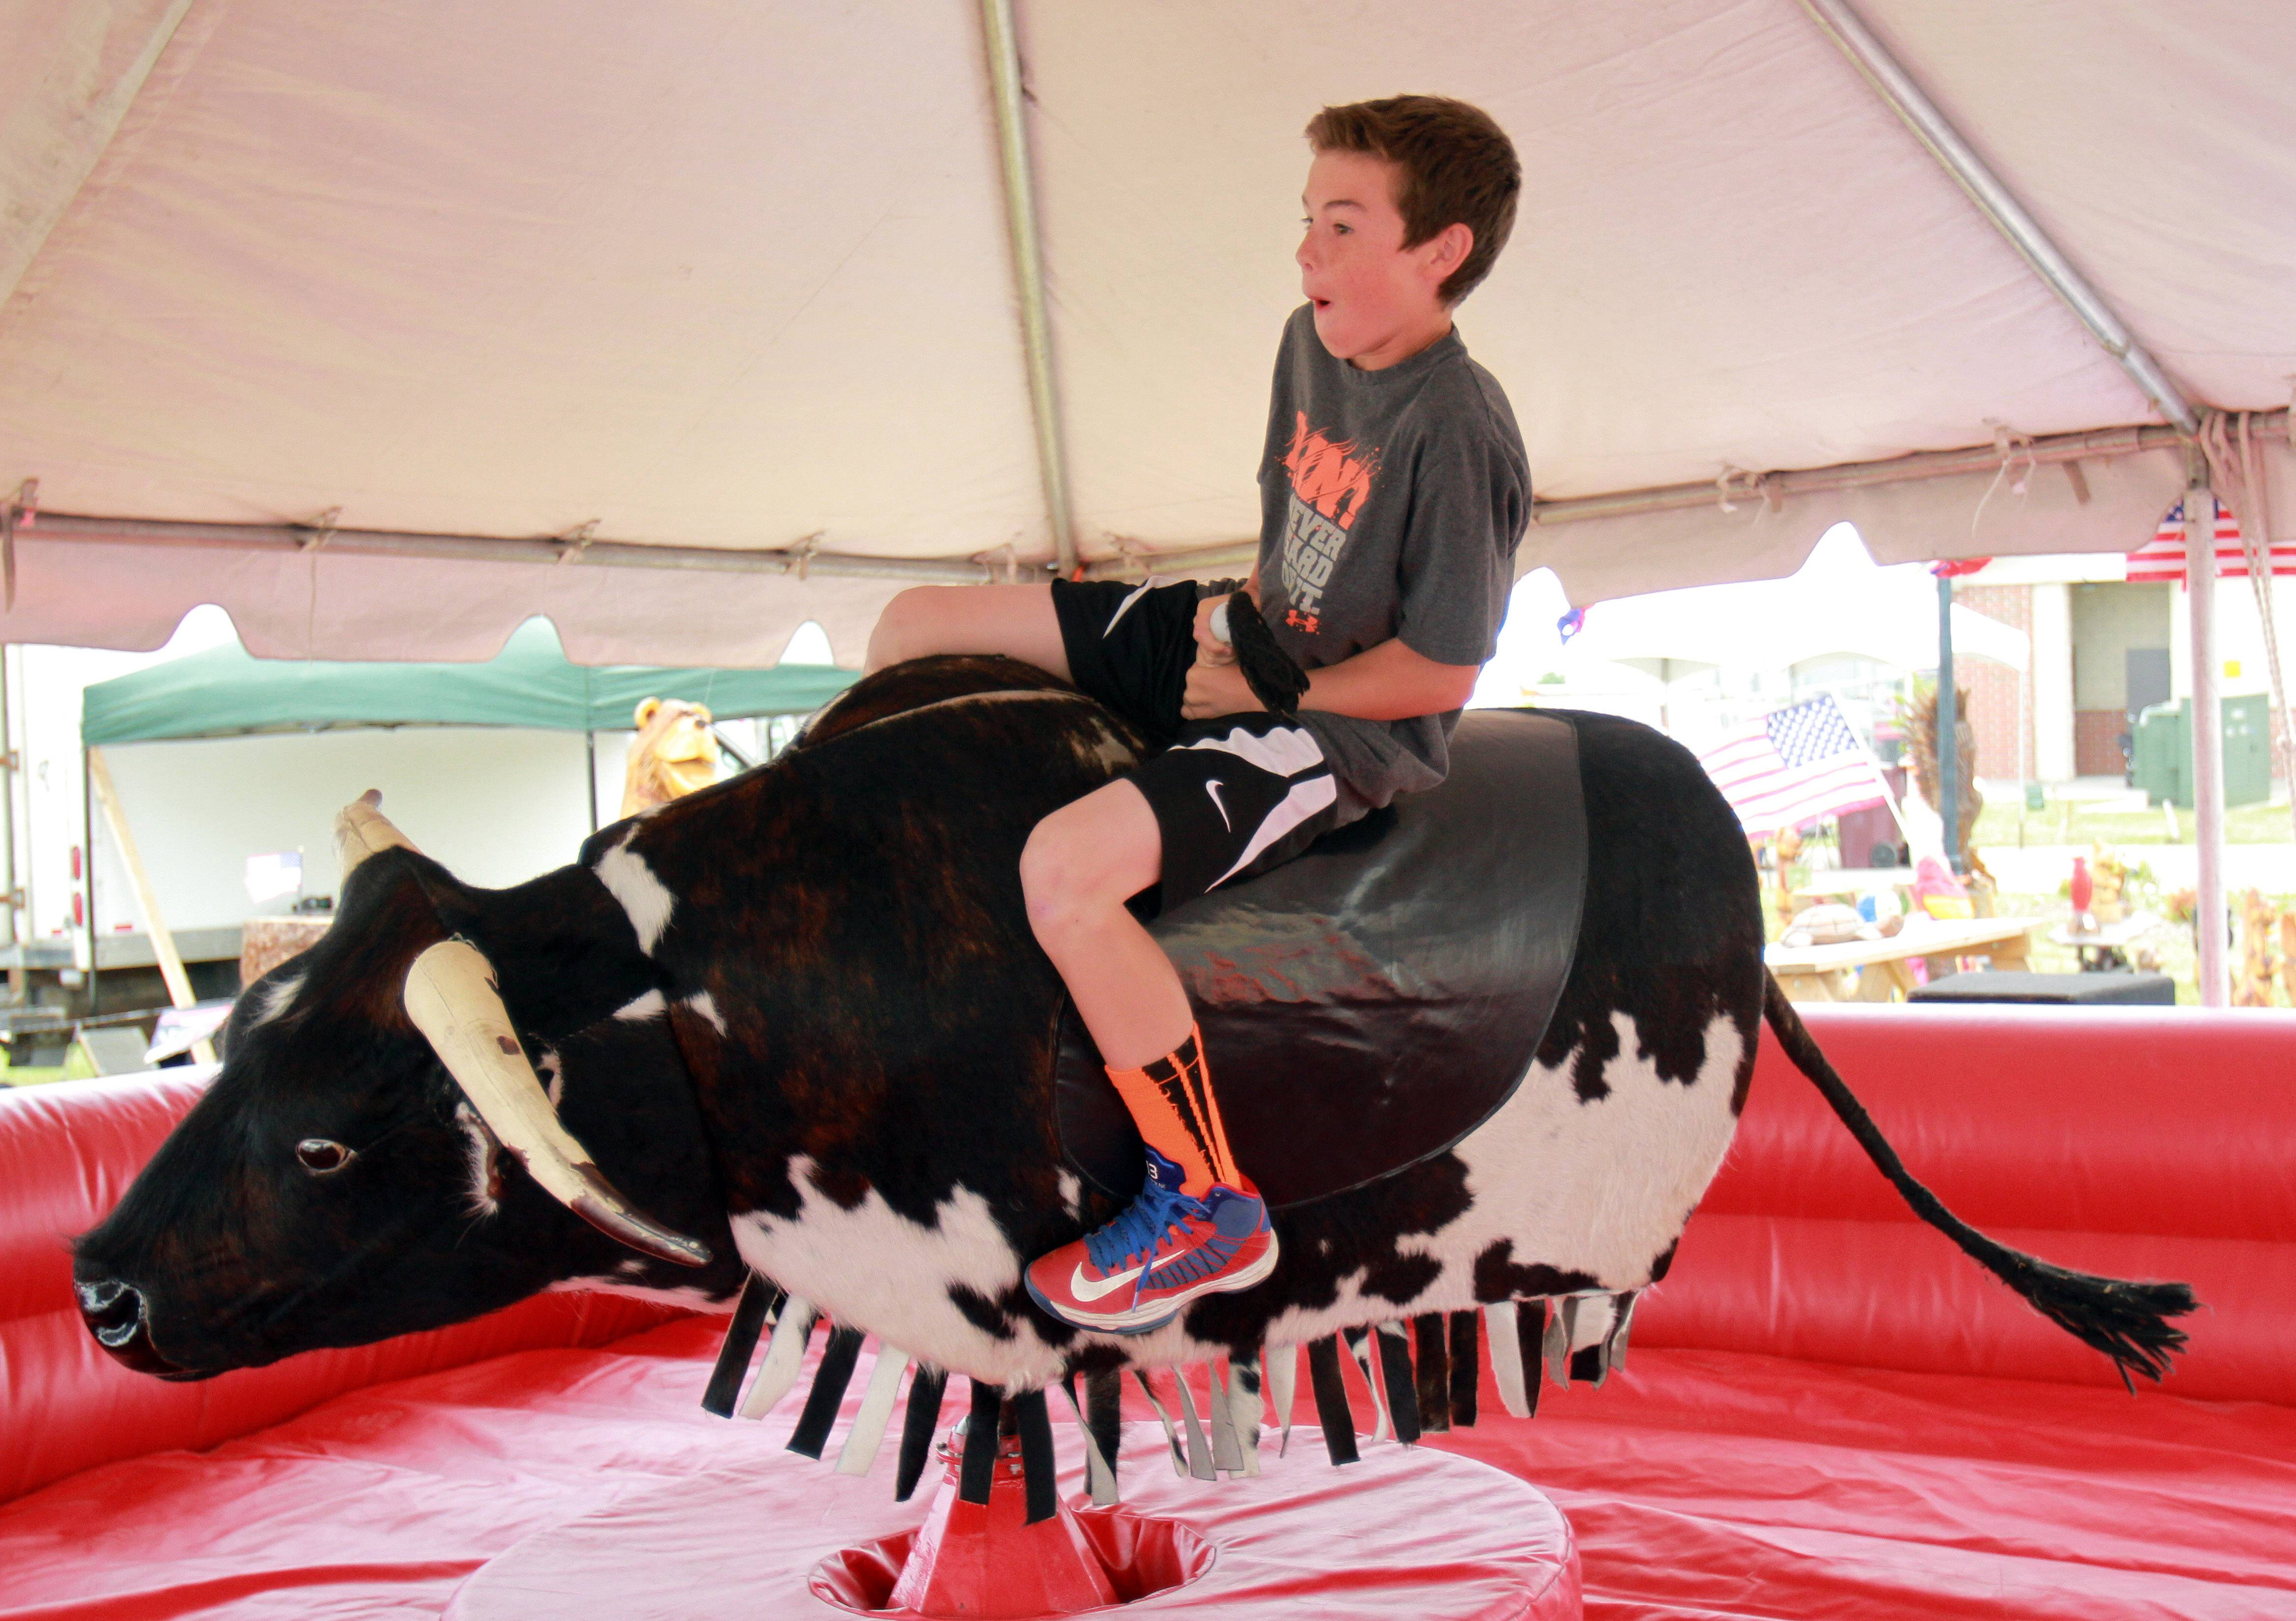 Max Sanders,13, of Lindenhurst rides a mechanical bull.